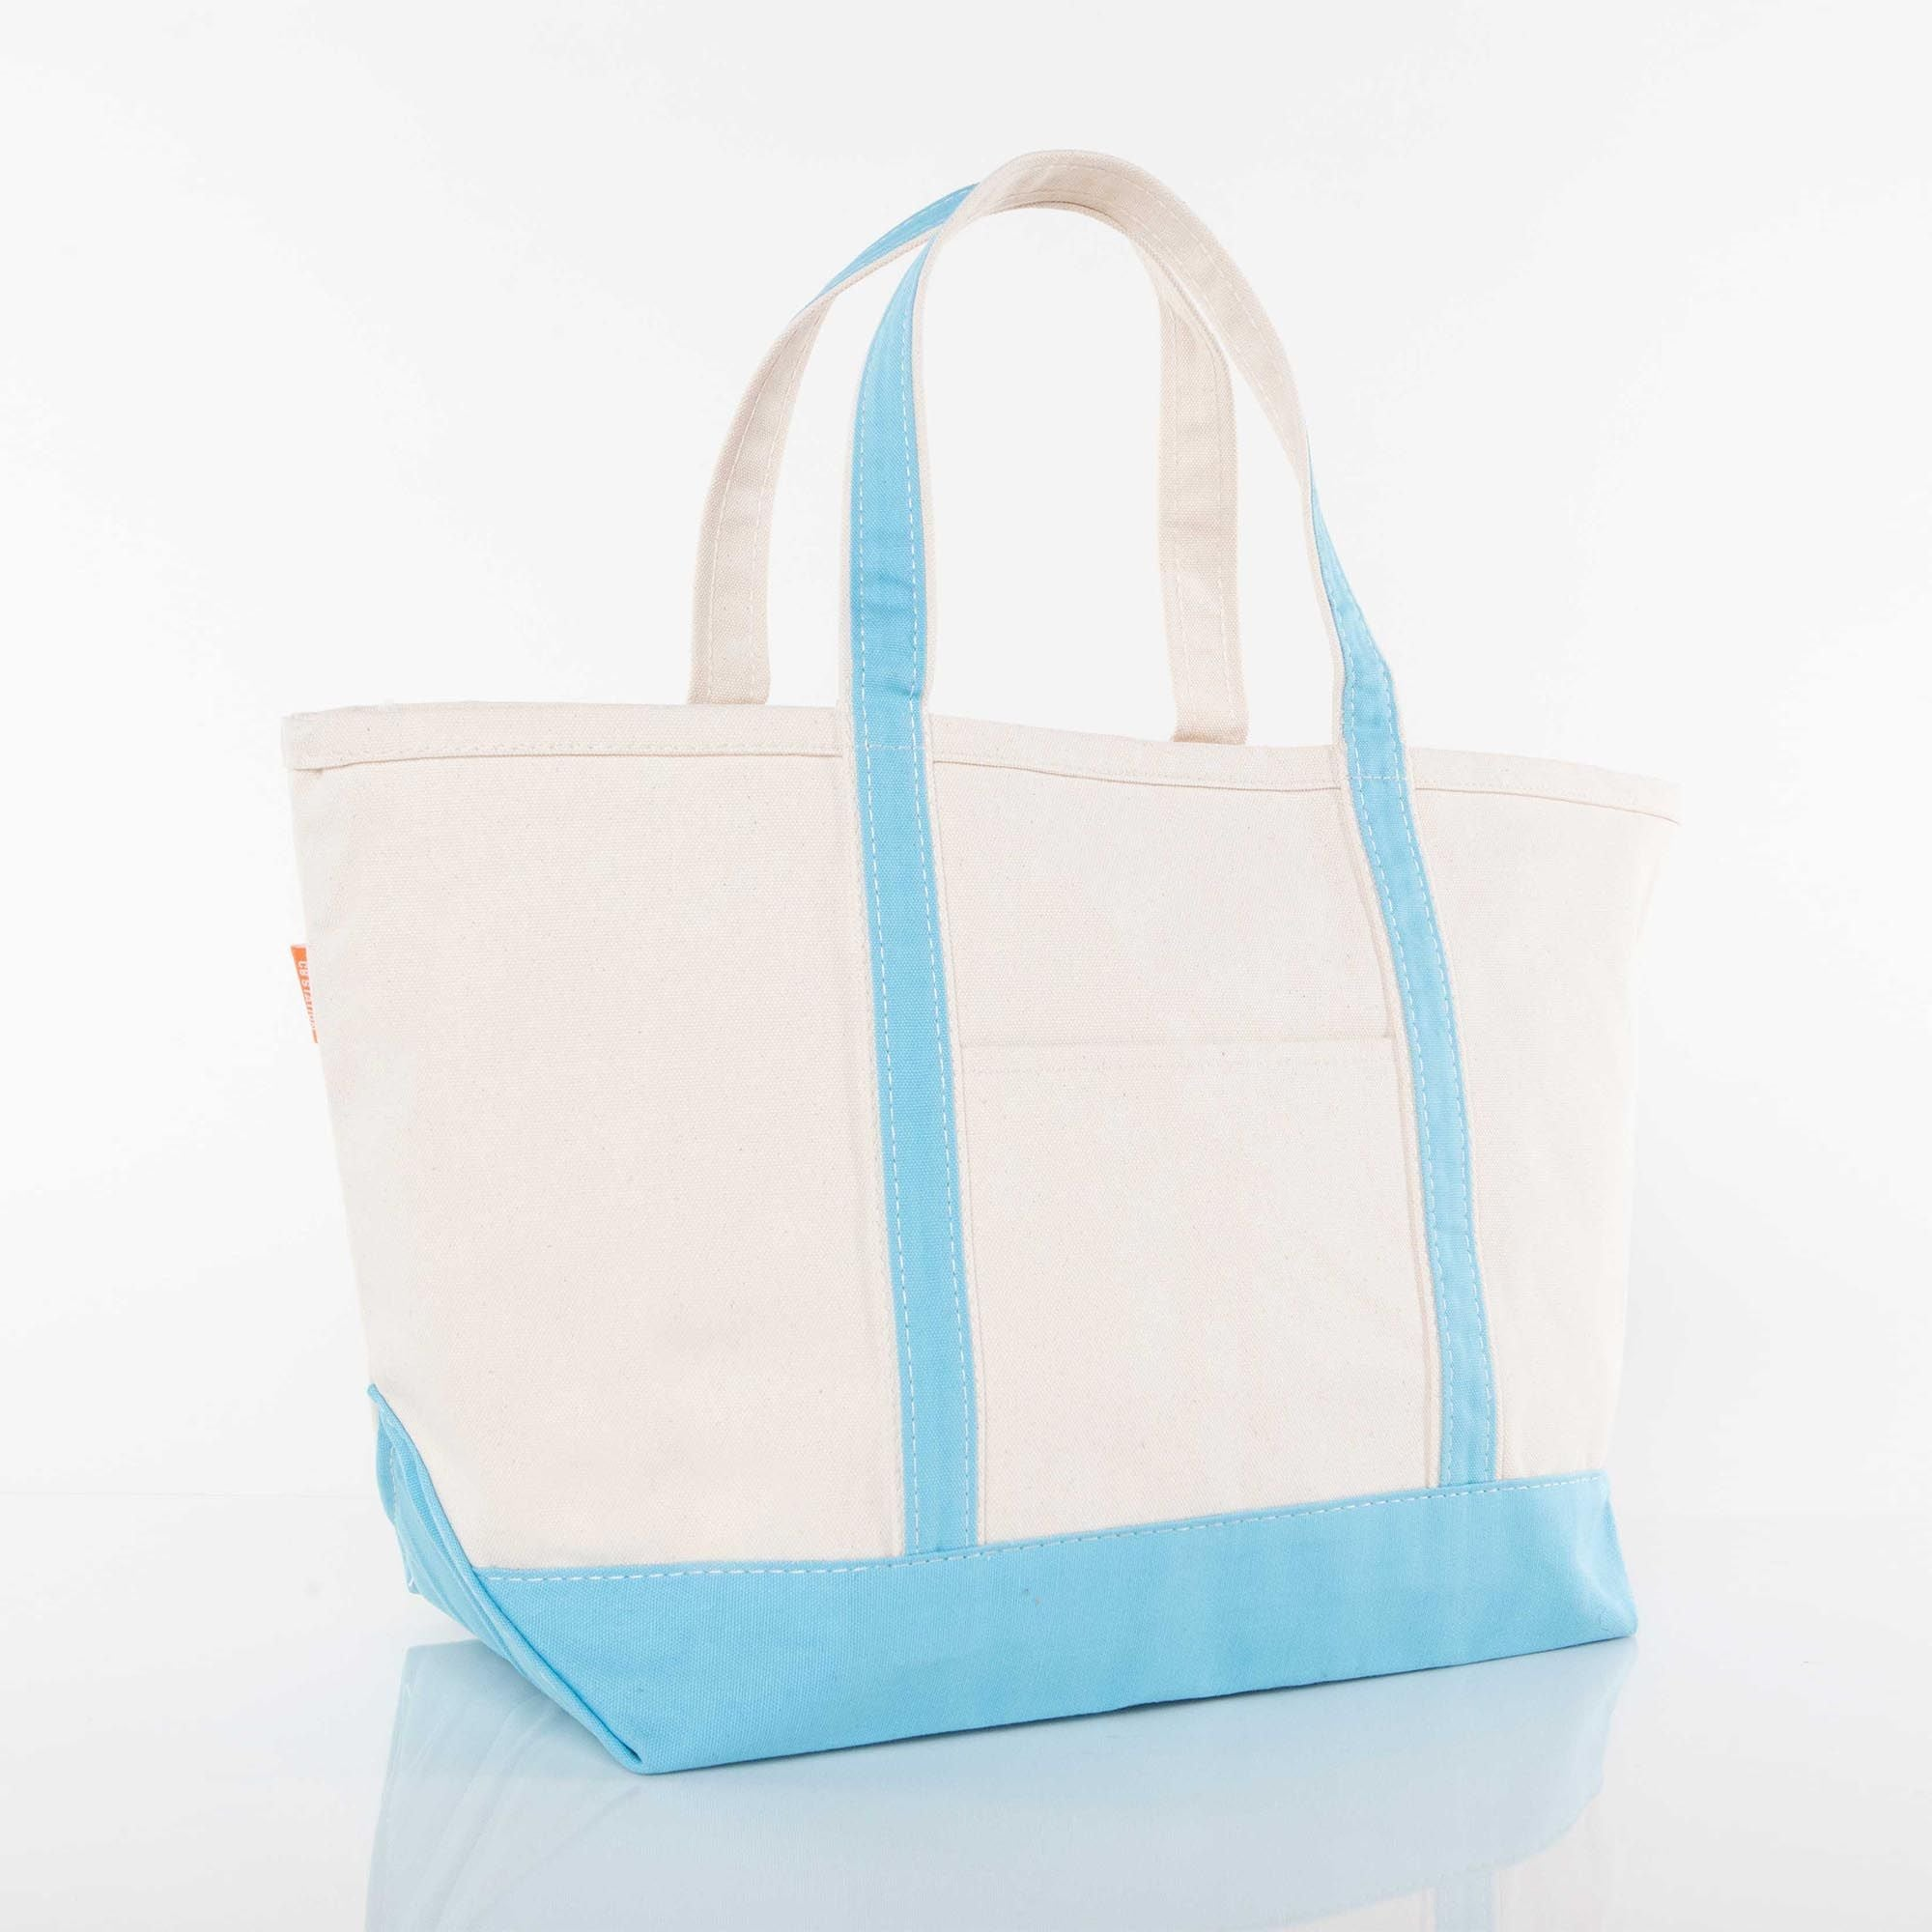 LARGE CANVAS BOAT TOTE - BABY BLUE